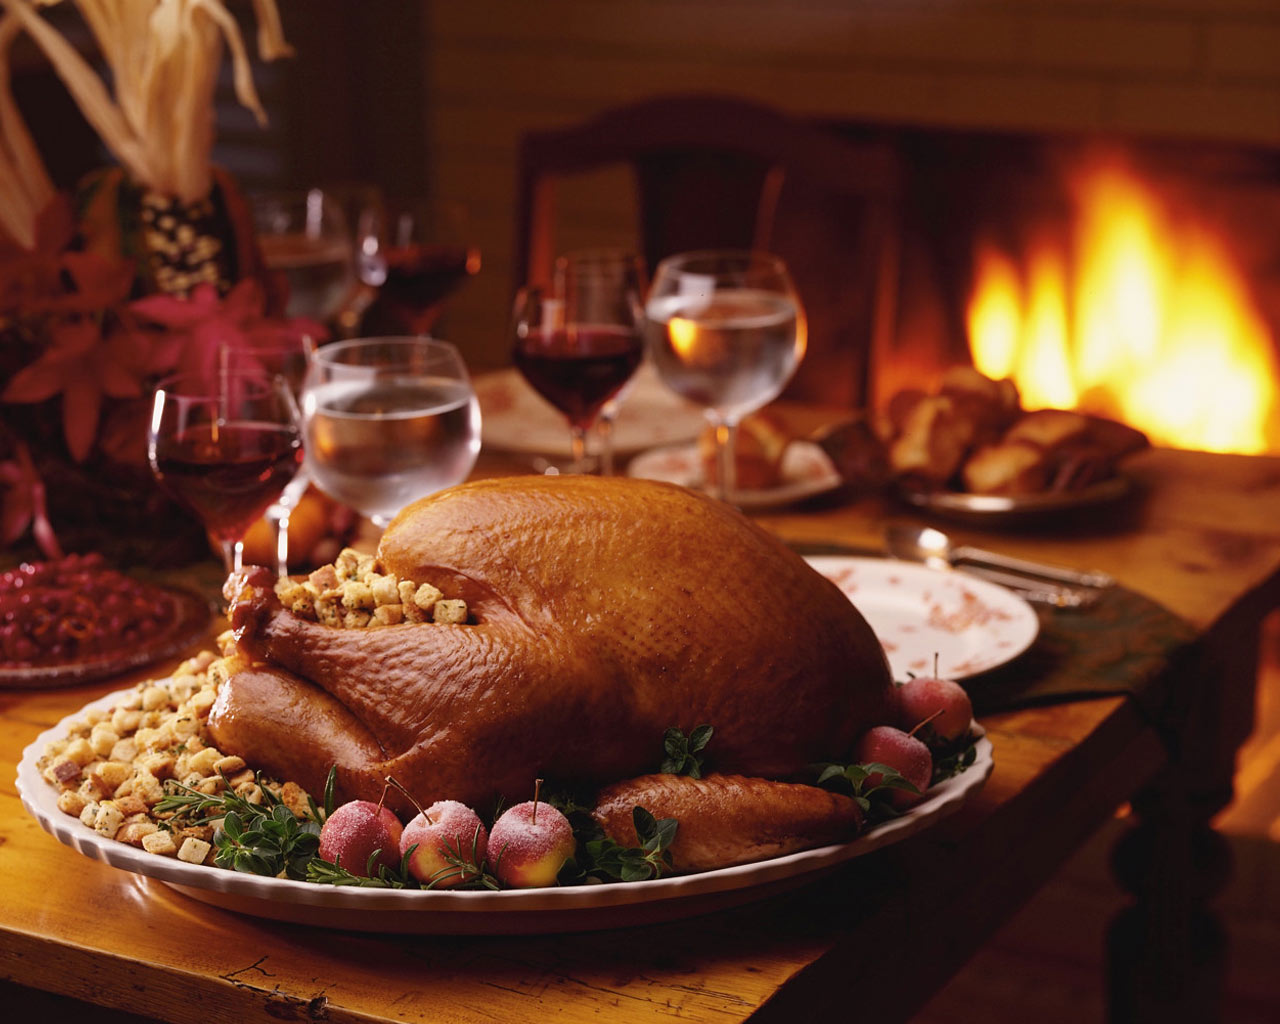 Free Thanksgiving Dinner Table Wallpaper Download The Wallpaper